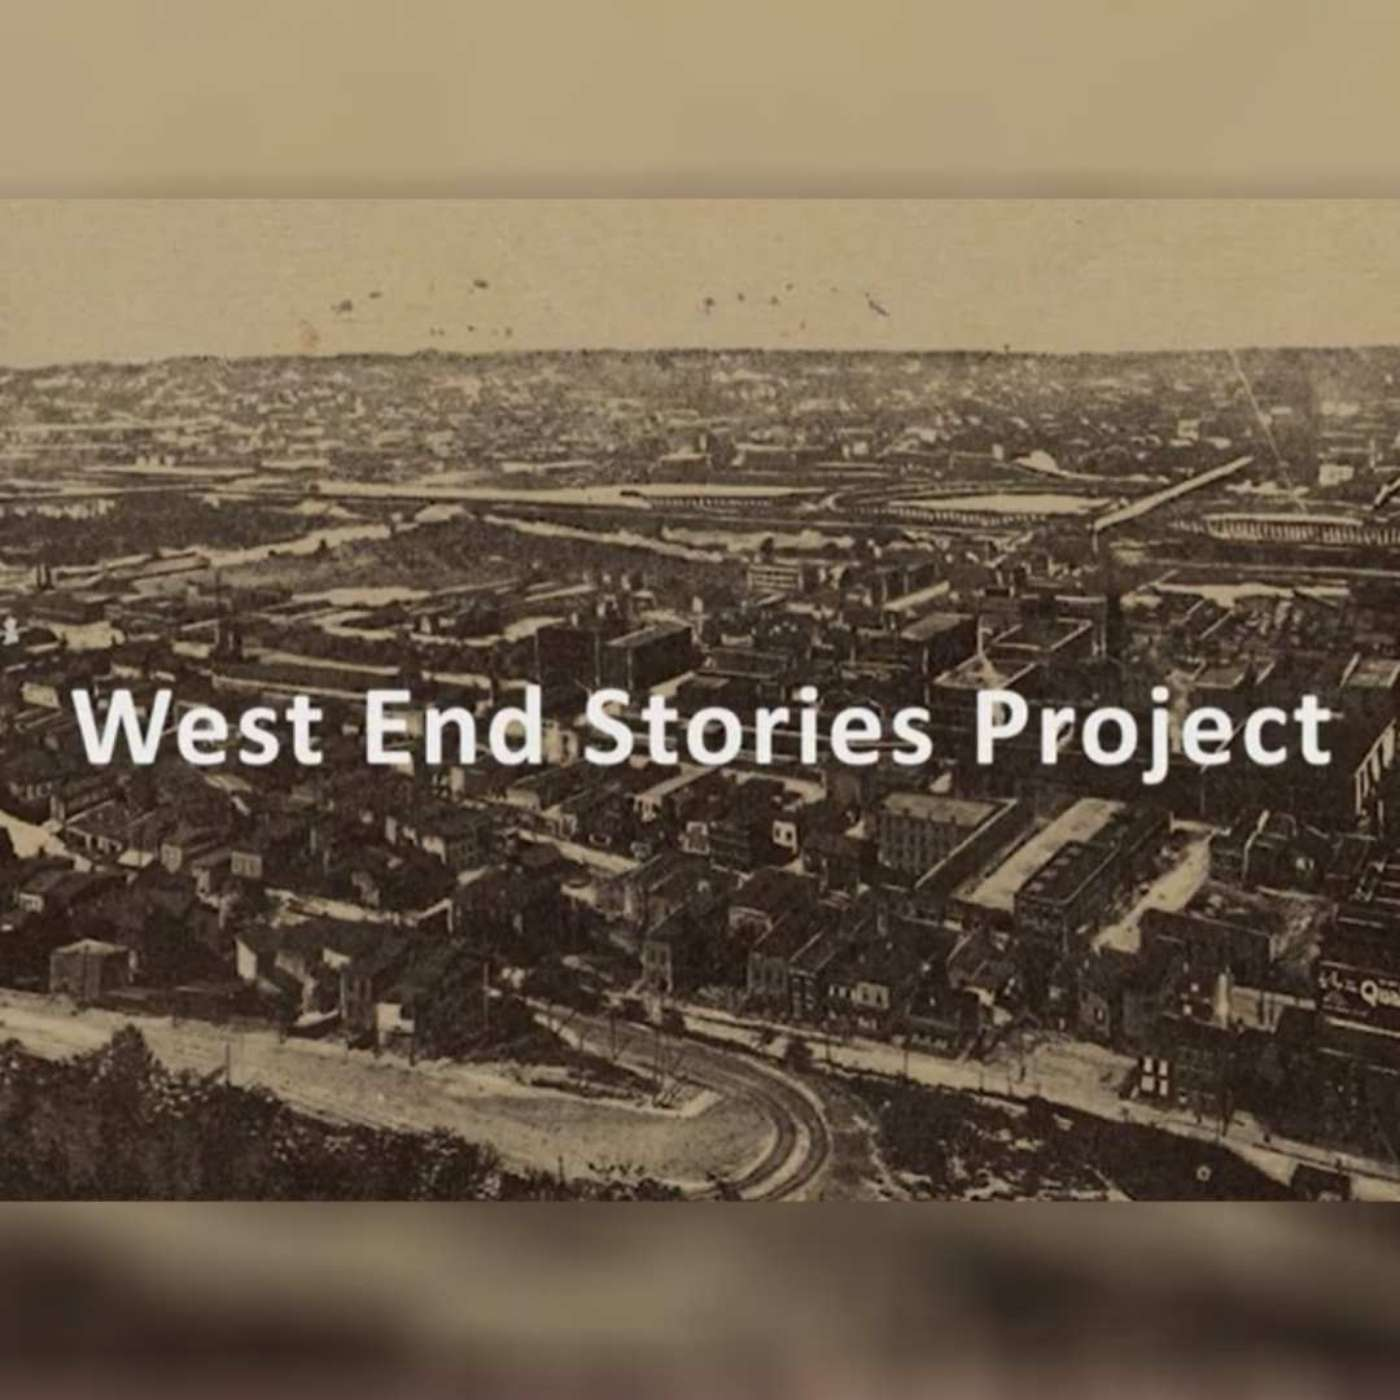 West End Stories Project